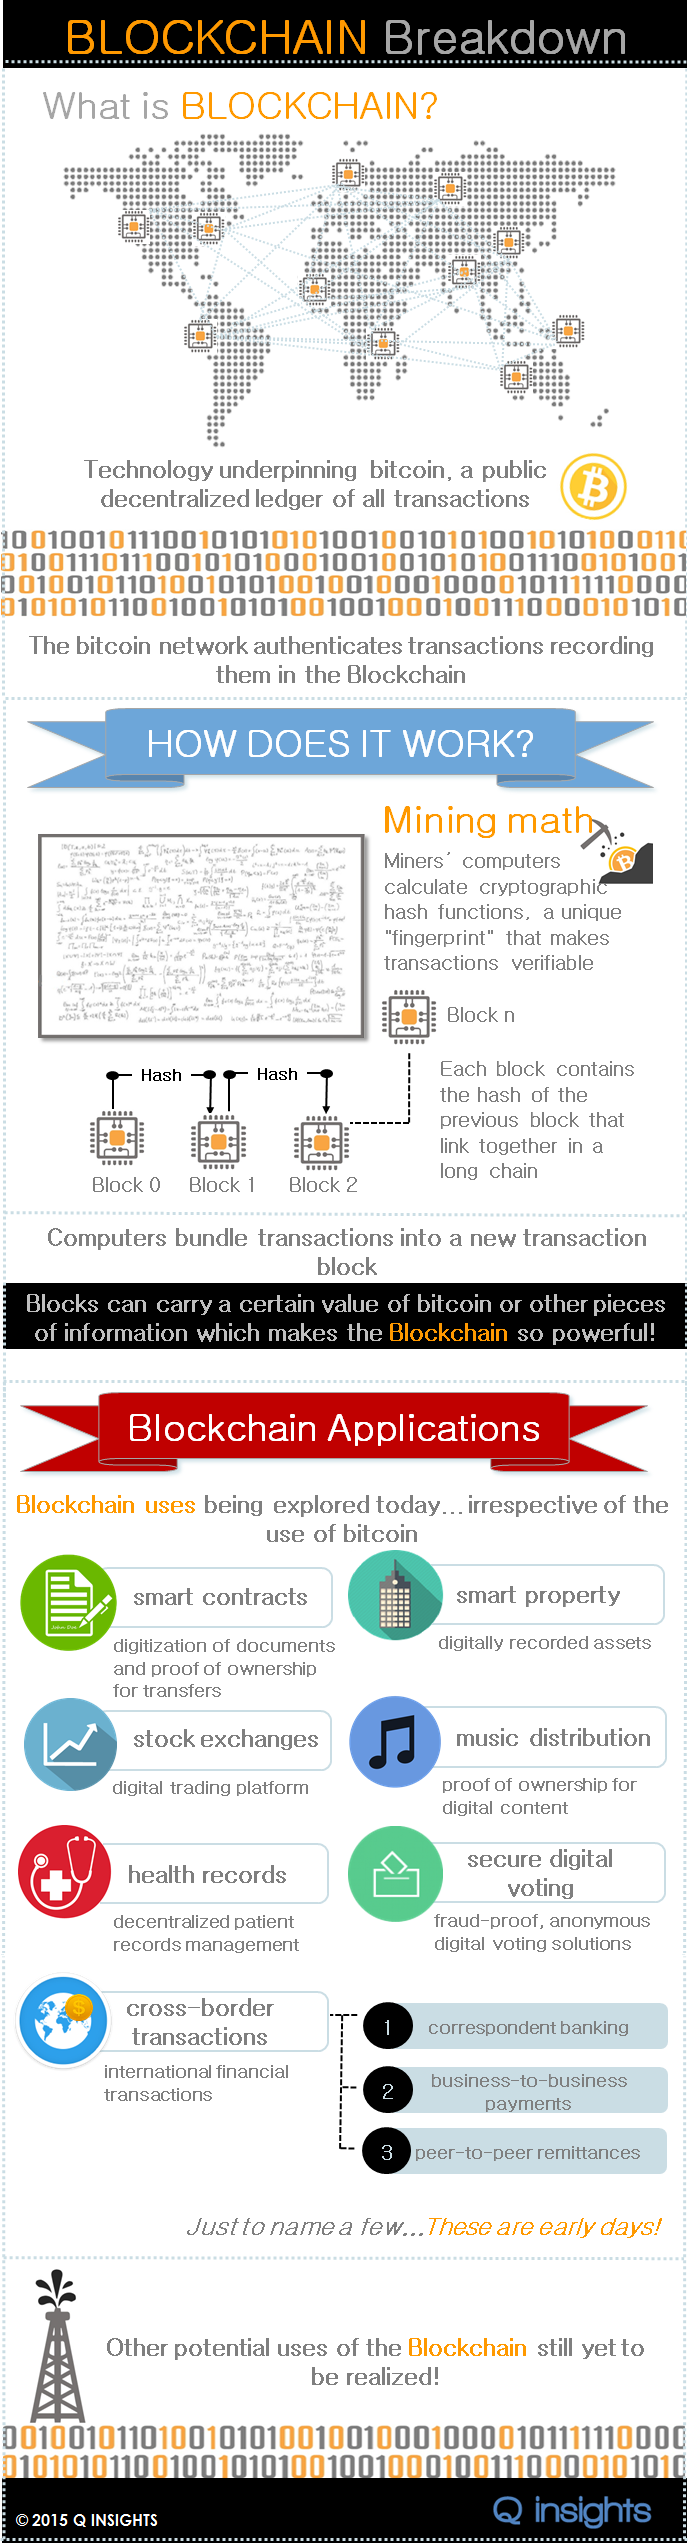 blockchain breakdown - what is a blockchain